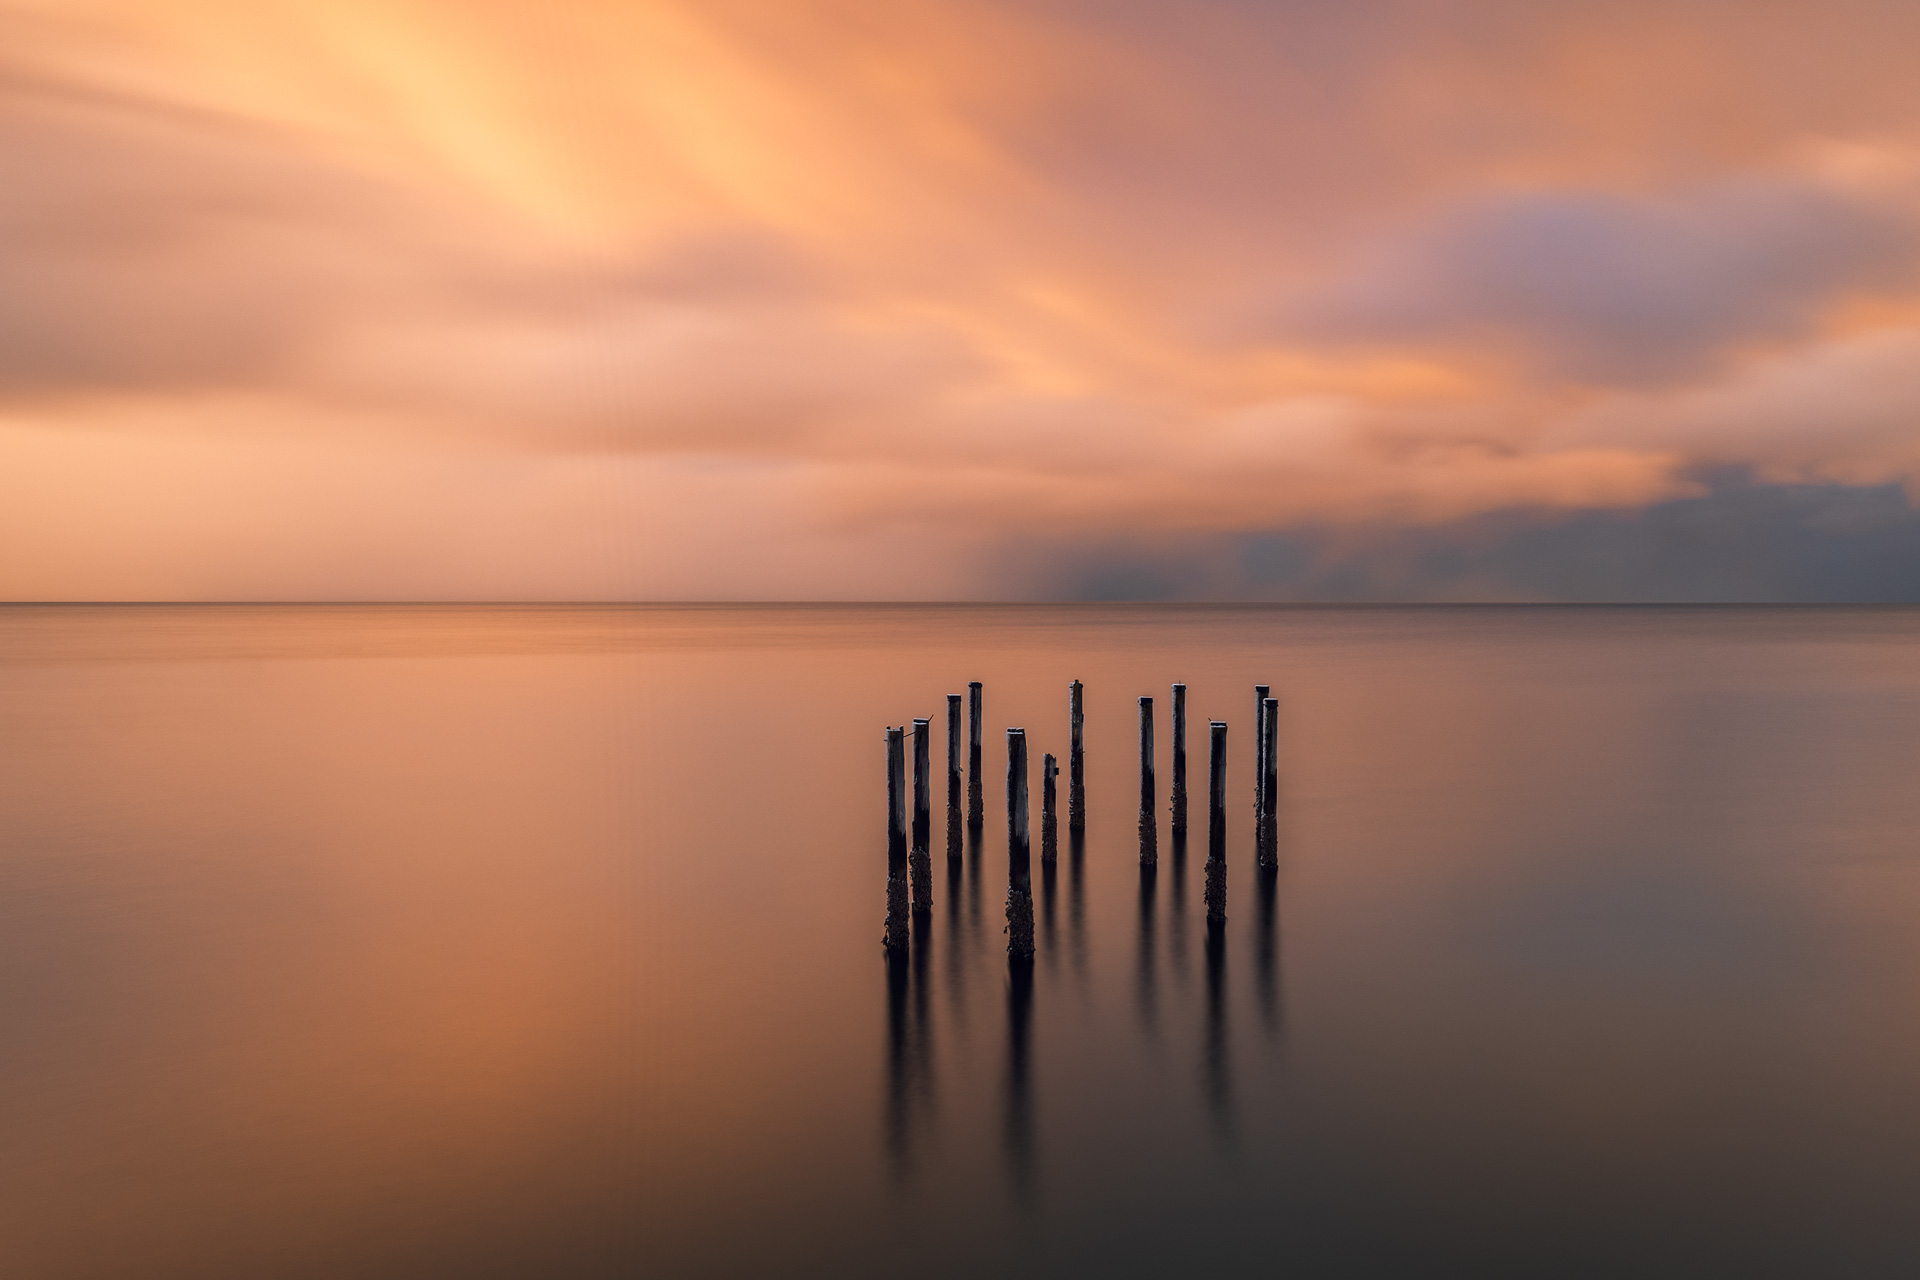 Introduction to Shutter Speed in Landscape Photography